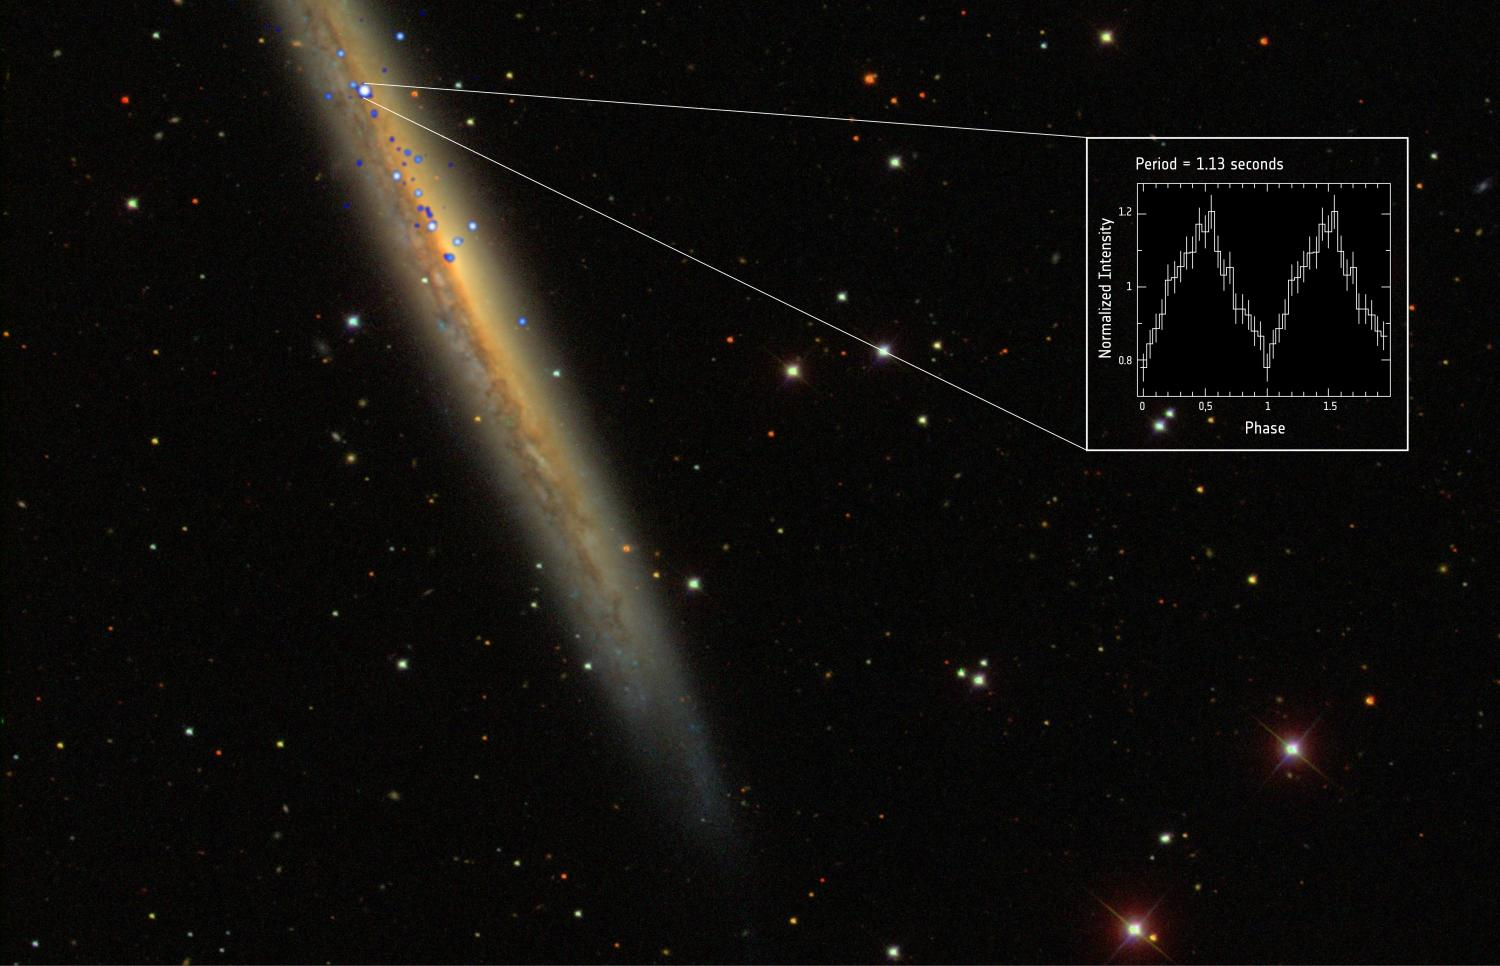 Monster pulsar discovered 50 million light years away